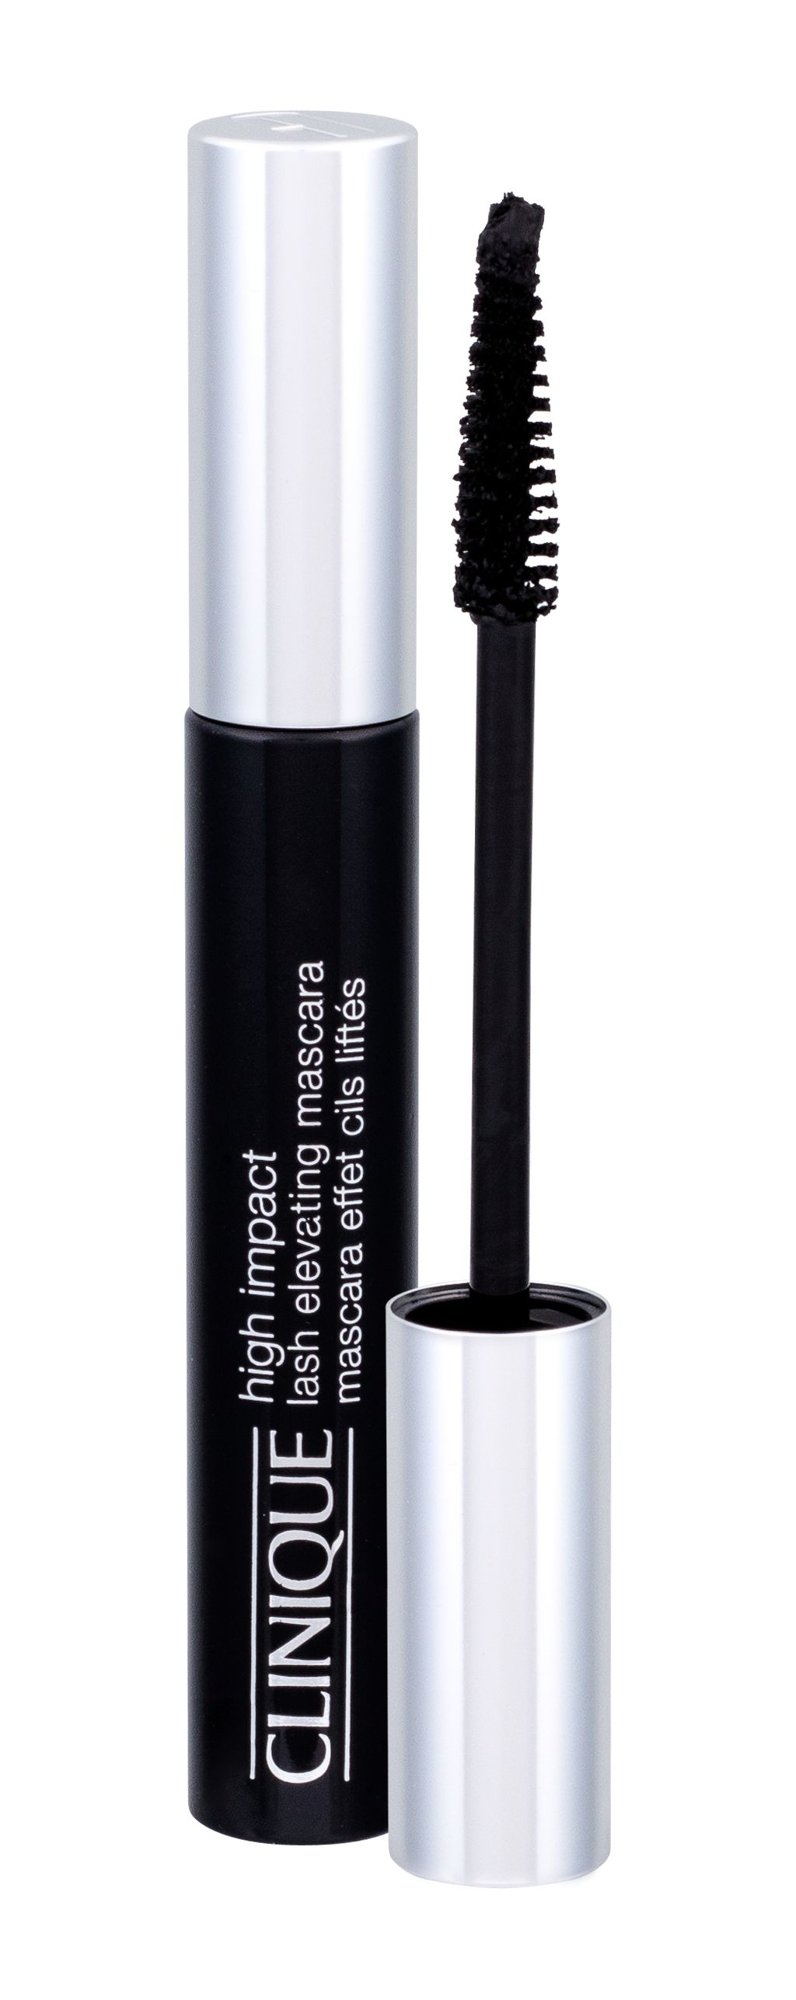 Clinique High Impact Mascara 8,5ml 01 Black Lash Elevating Mascara